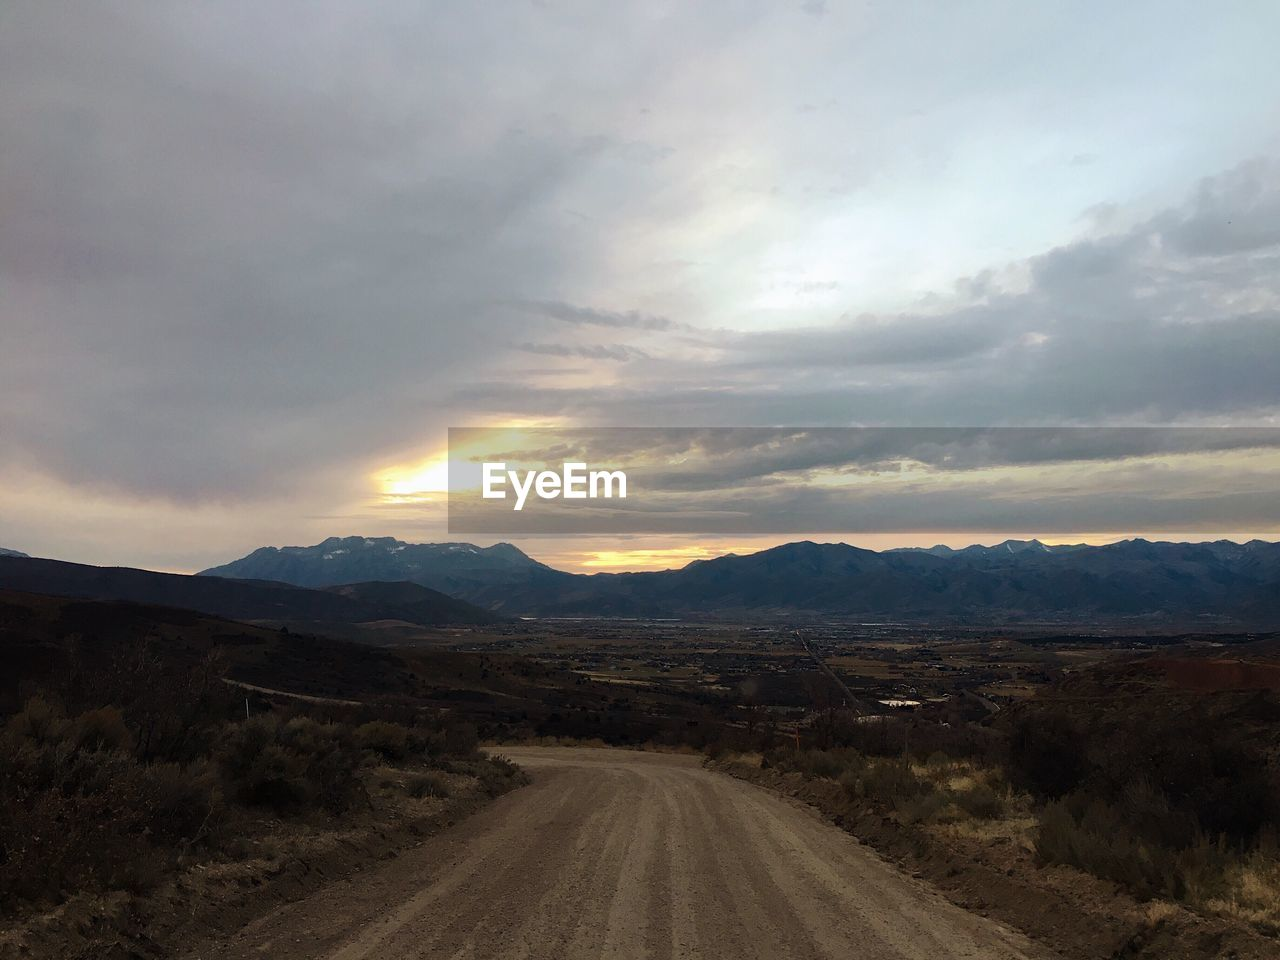 sky, cloud - sky, landscape, road, scenics - nature, environment, beauty in nature, mountain, the way forward, tranquility, direction, nature, transportation, tranquil scene, non-urban scene, no people, mountain range, diminishing perspective, dirt road, dirt, outdoors, long